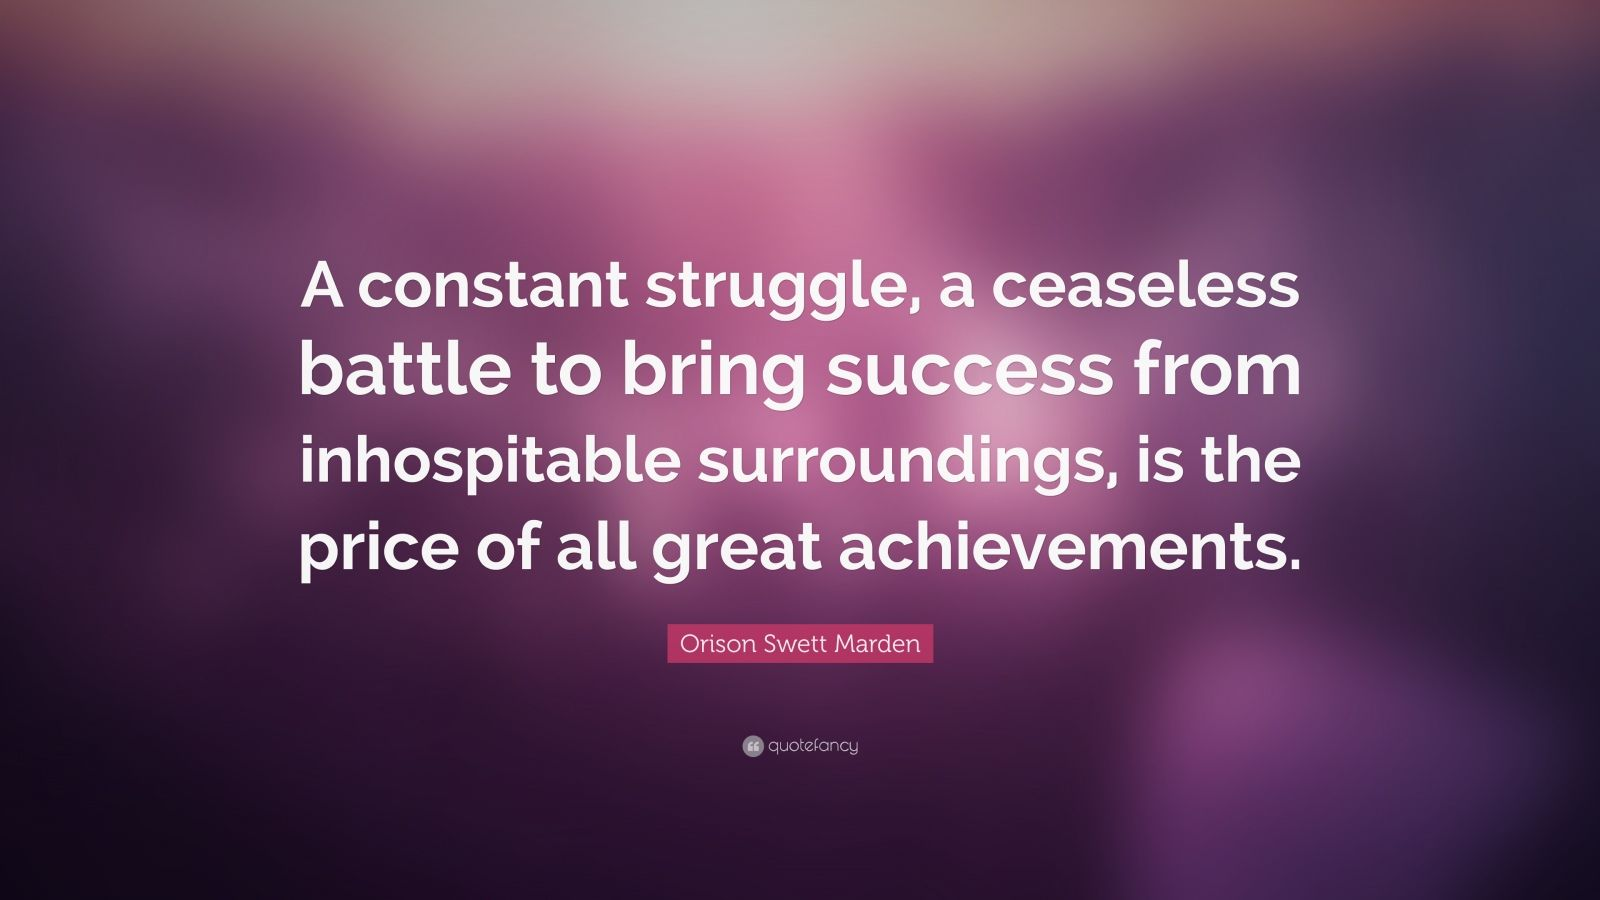 "Orison Swett Marden Quote: ""A constant struggle, a ceaseless battle to bring success from inhospitable surroundings, is the price of all great achievements."""